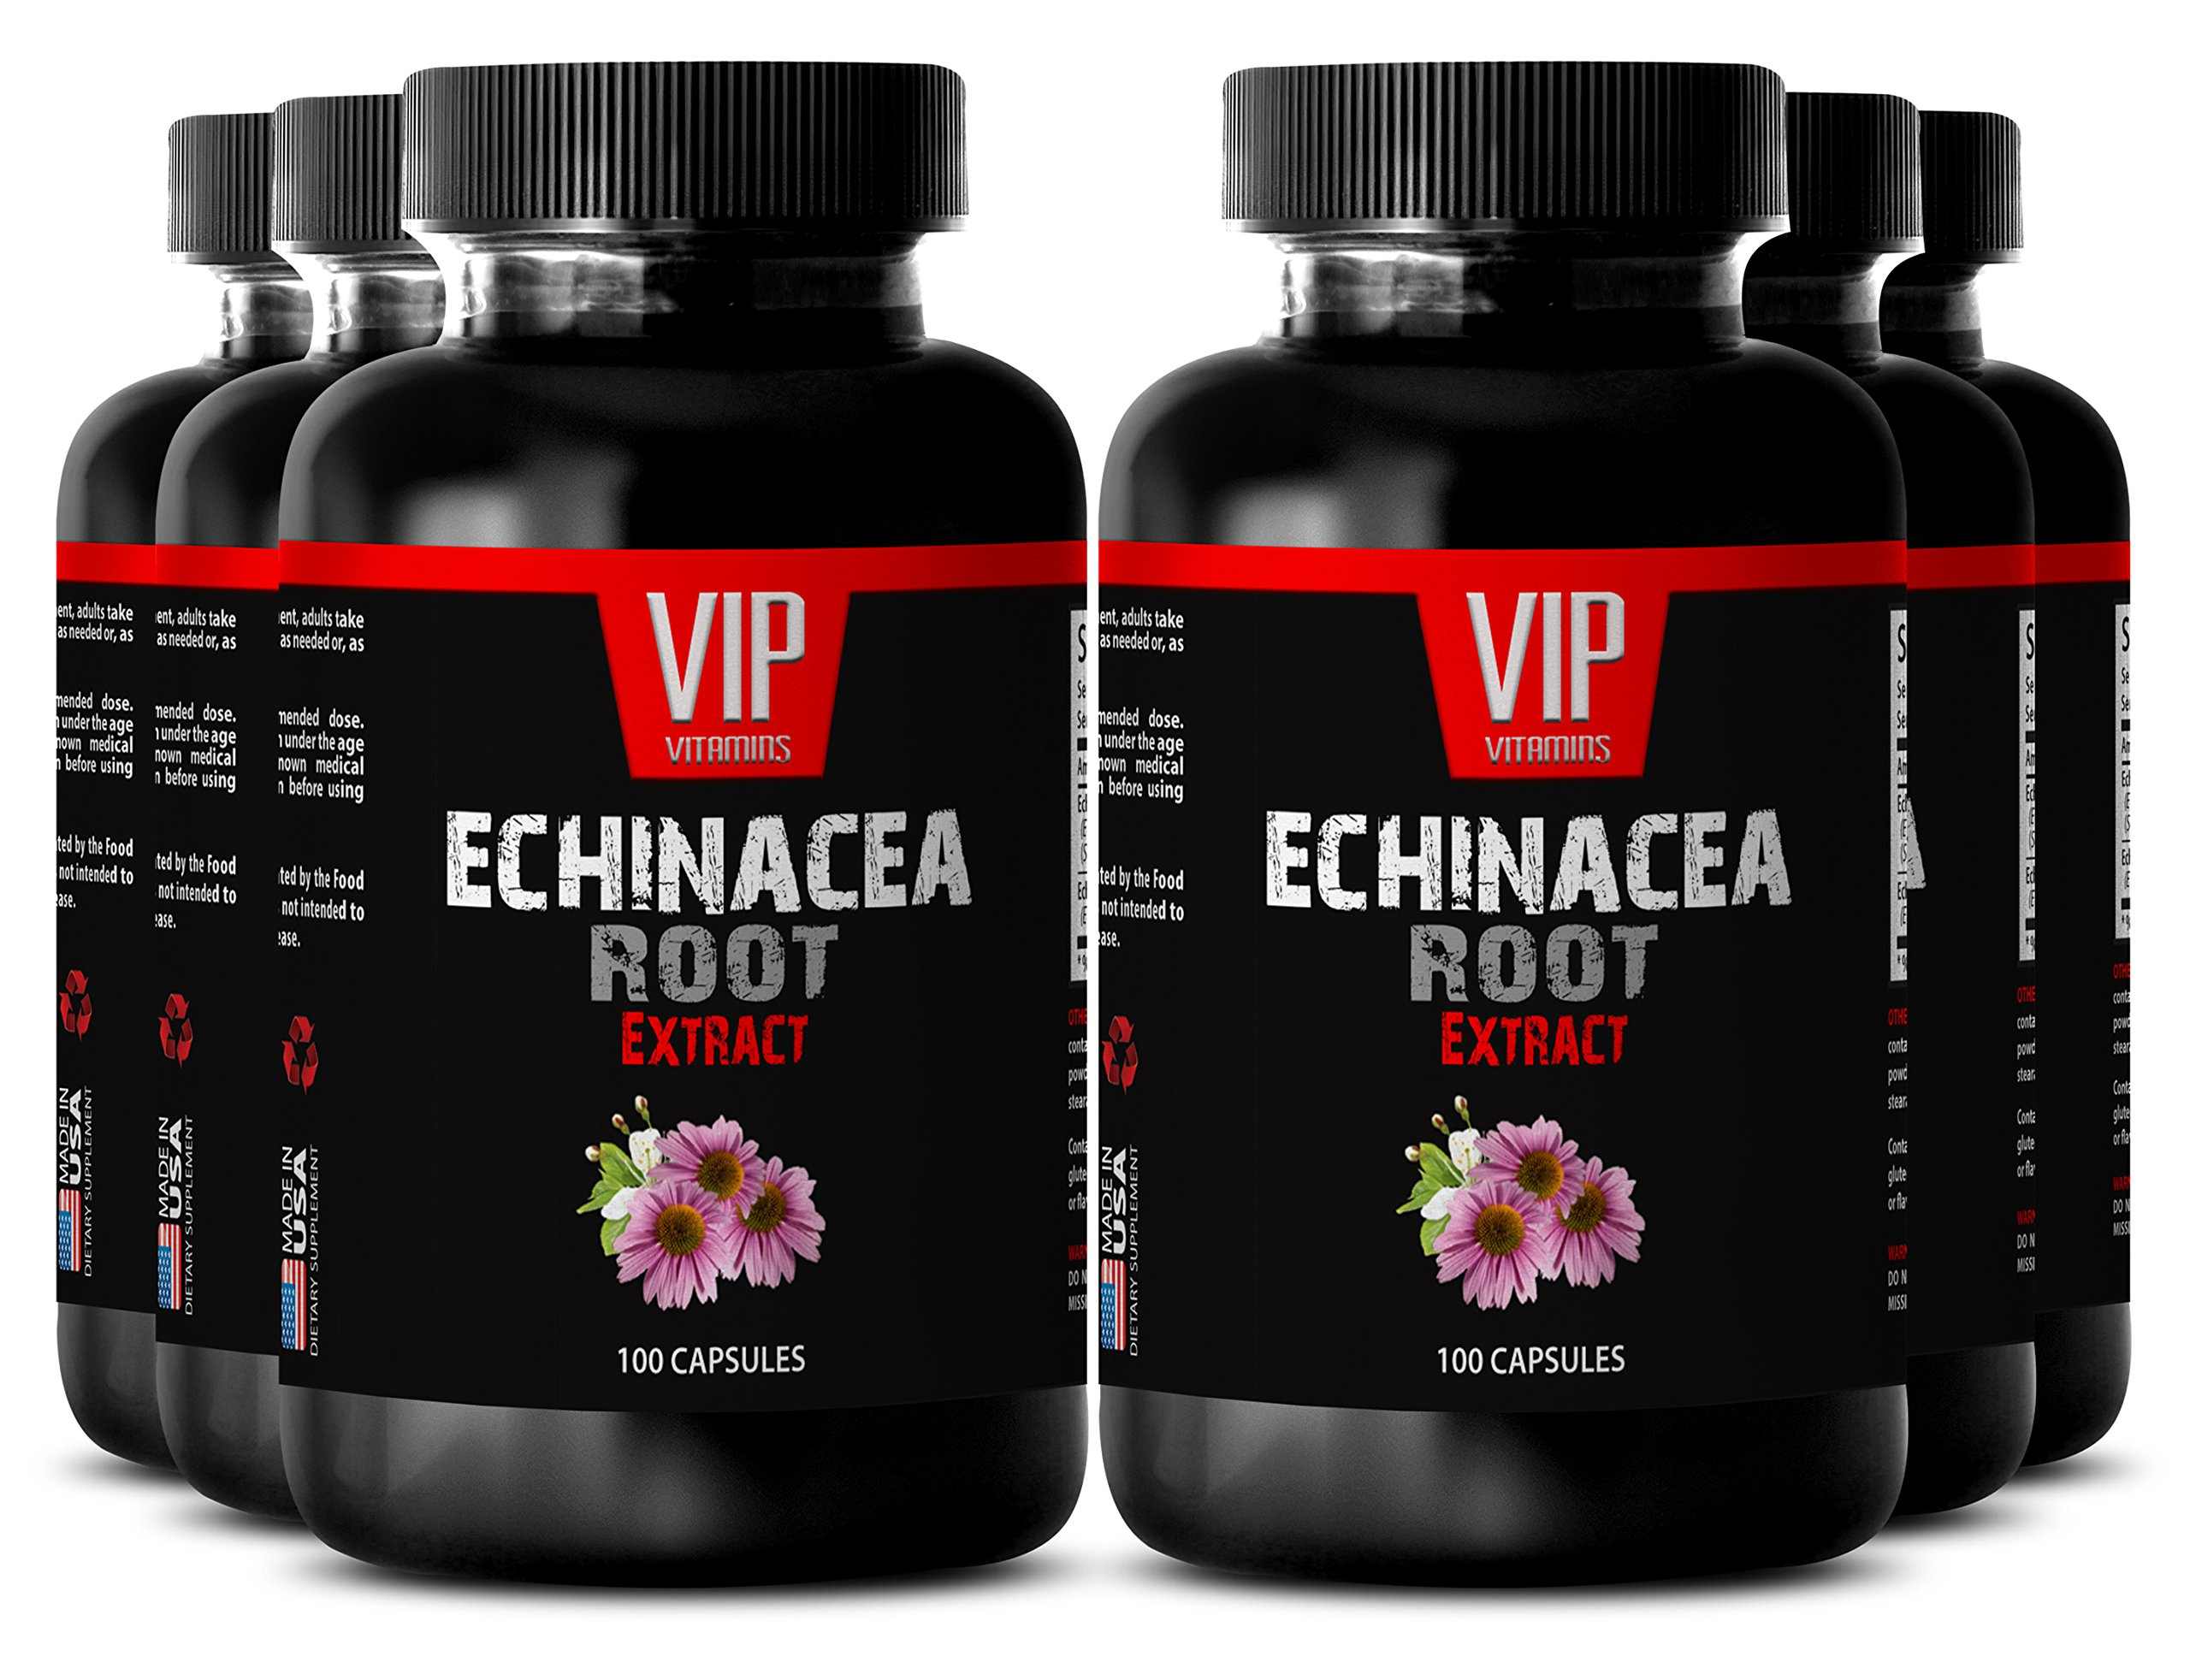 Eyesight supplements - ECHINACEA ROOT EXTRACT - Improve vision - 6 Bottles 600 Capsules by VIP VITAMINS